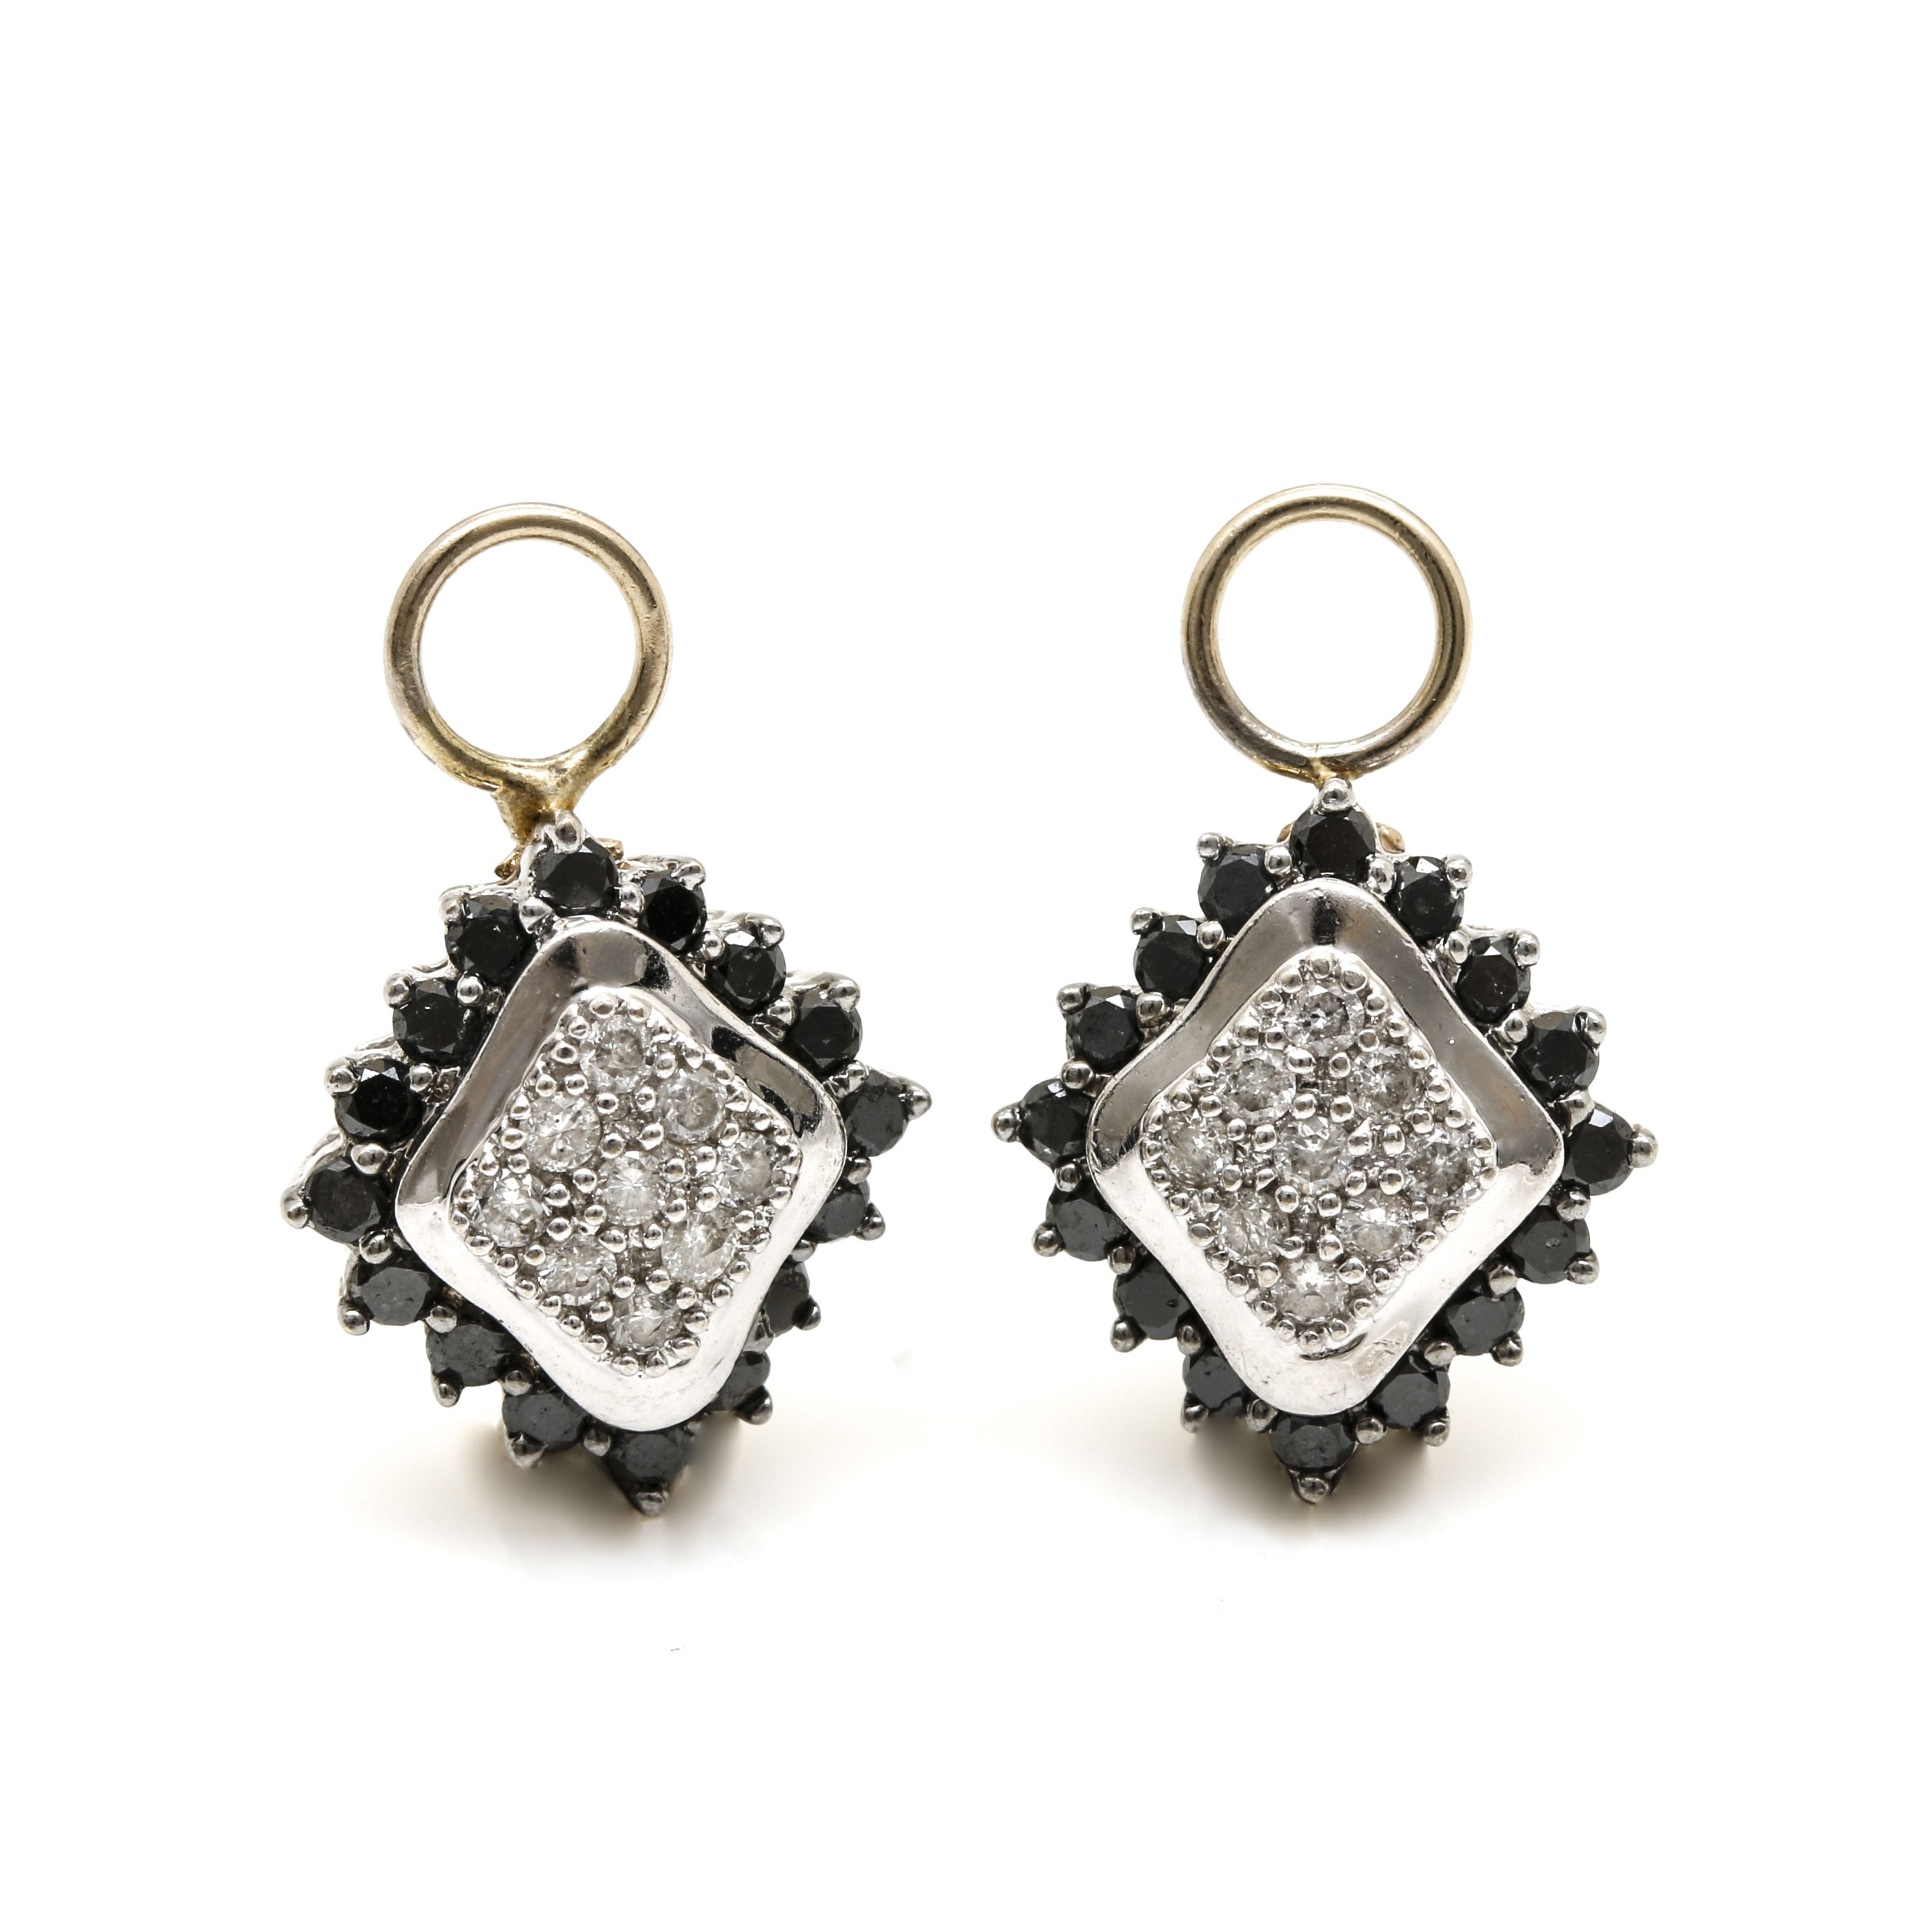 14K White Gold White and Black Diamond Earring Jackets With Yellow Gold Accents